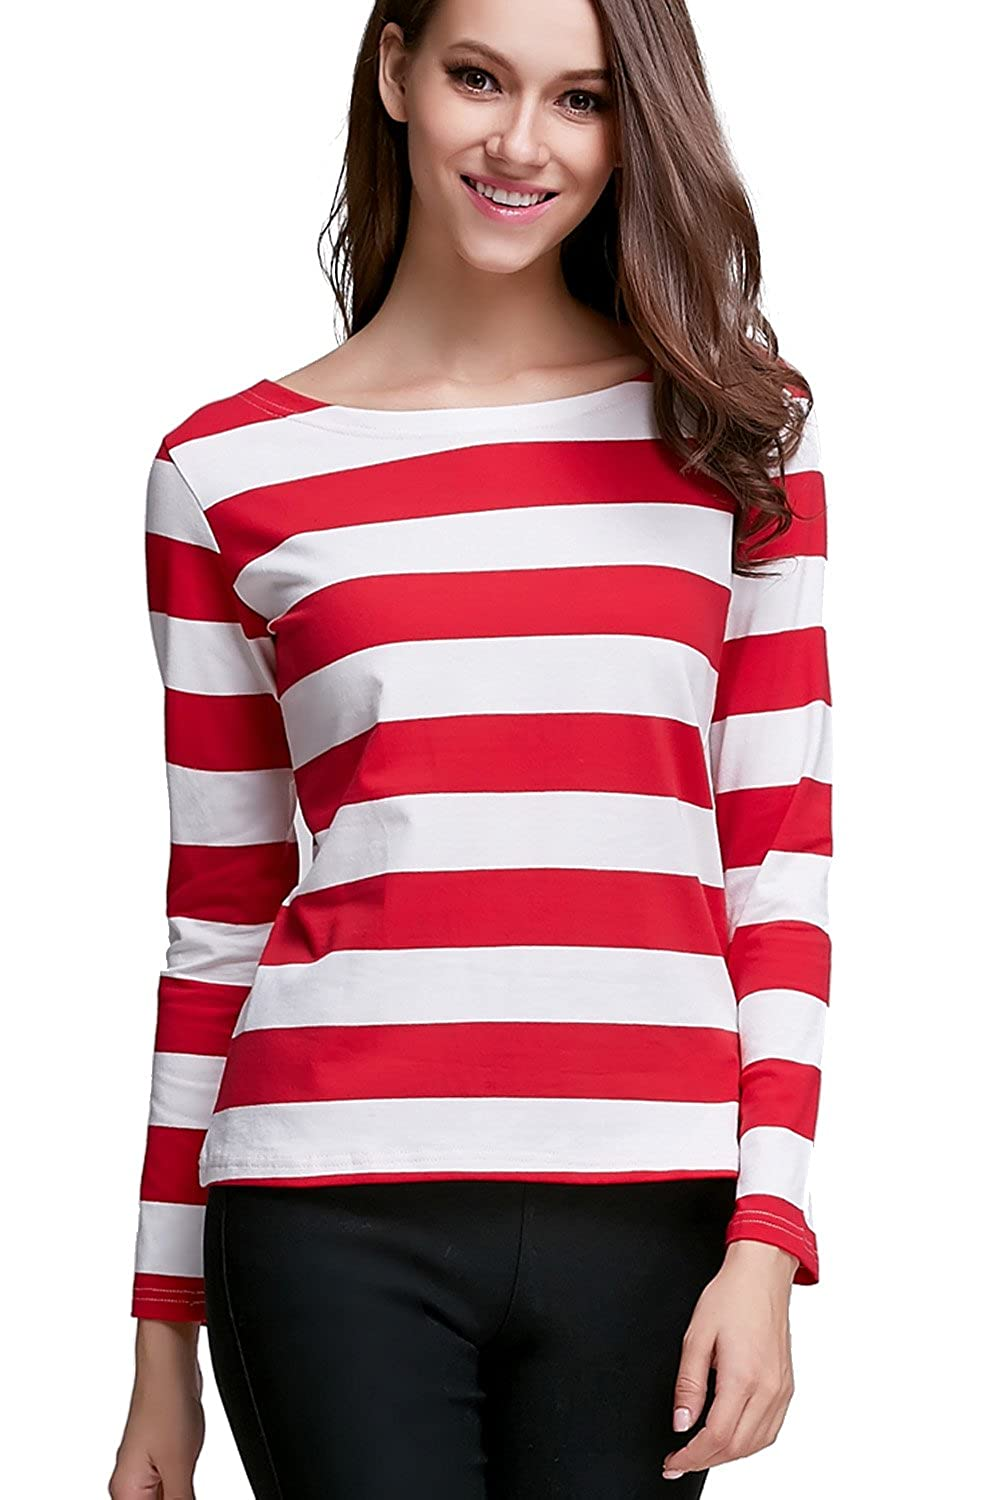 Find great deals on eBay for red stripe blouse. Shop with confidence.